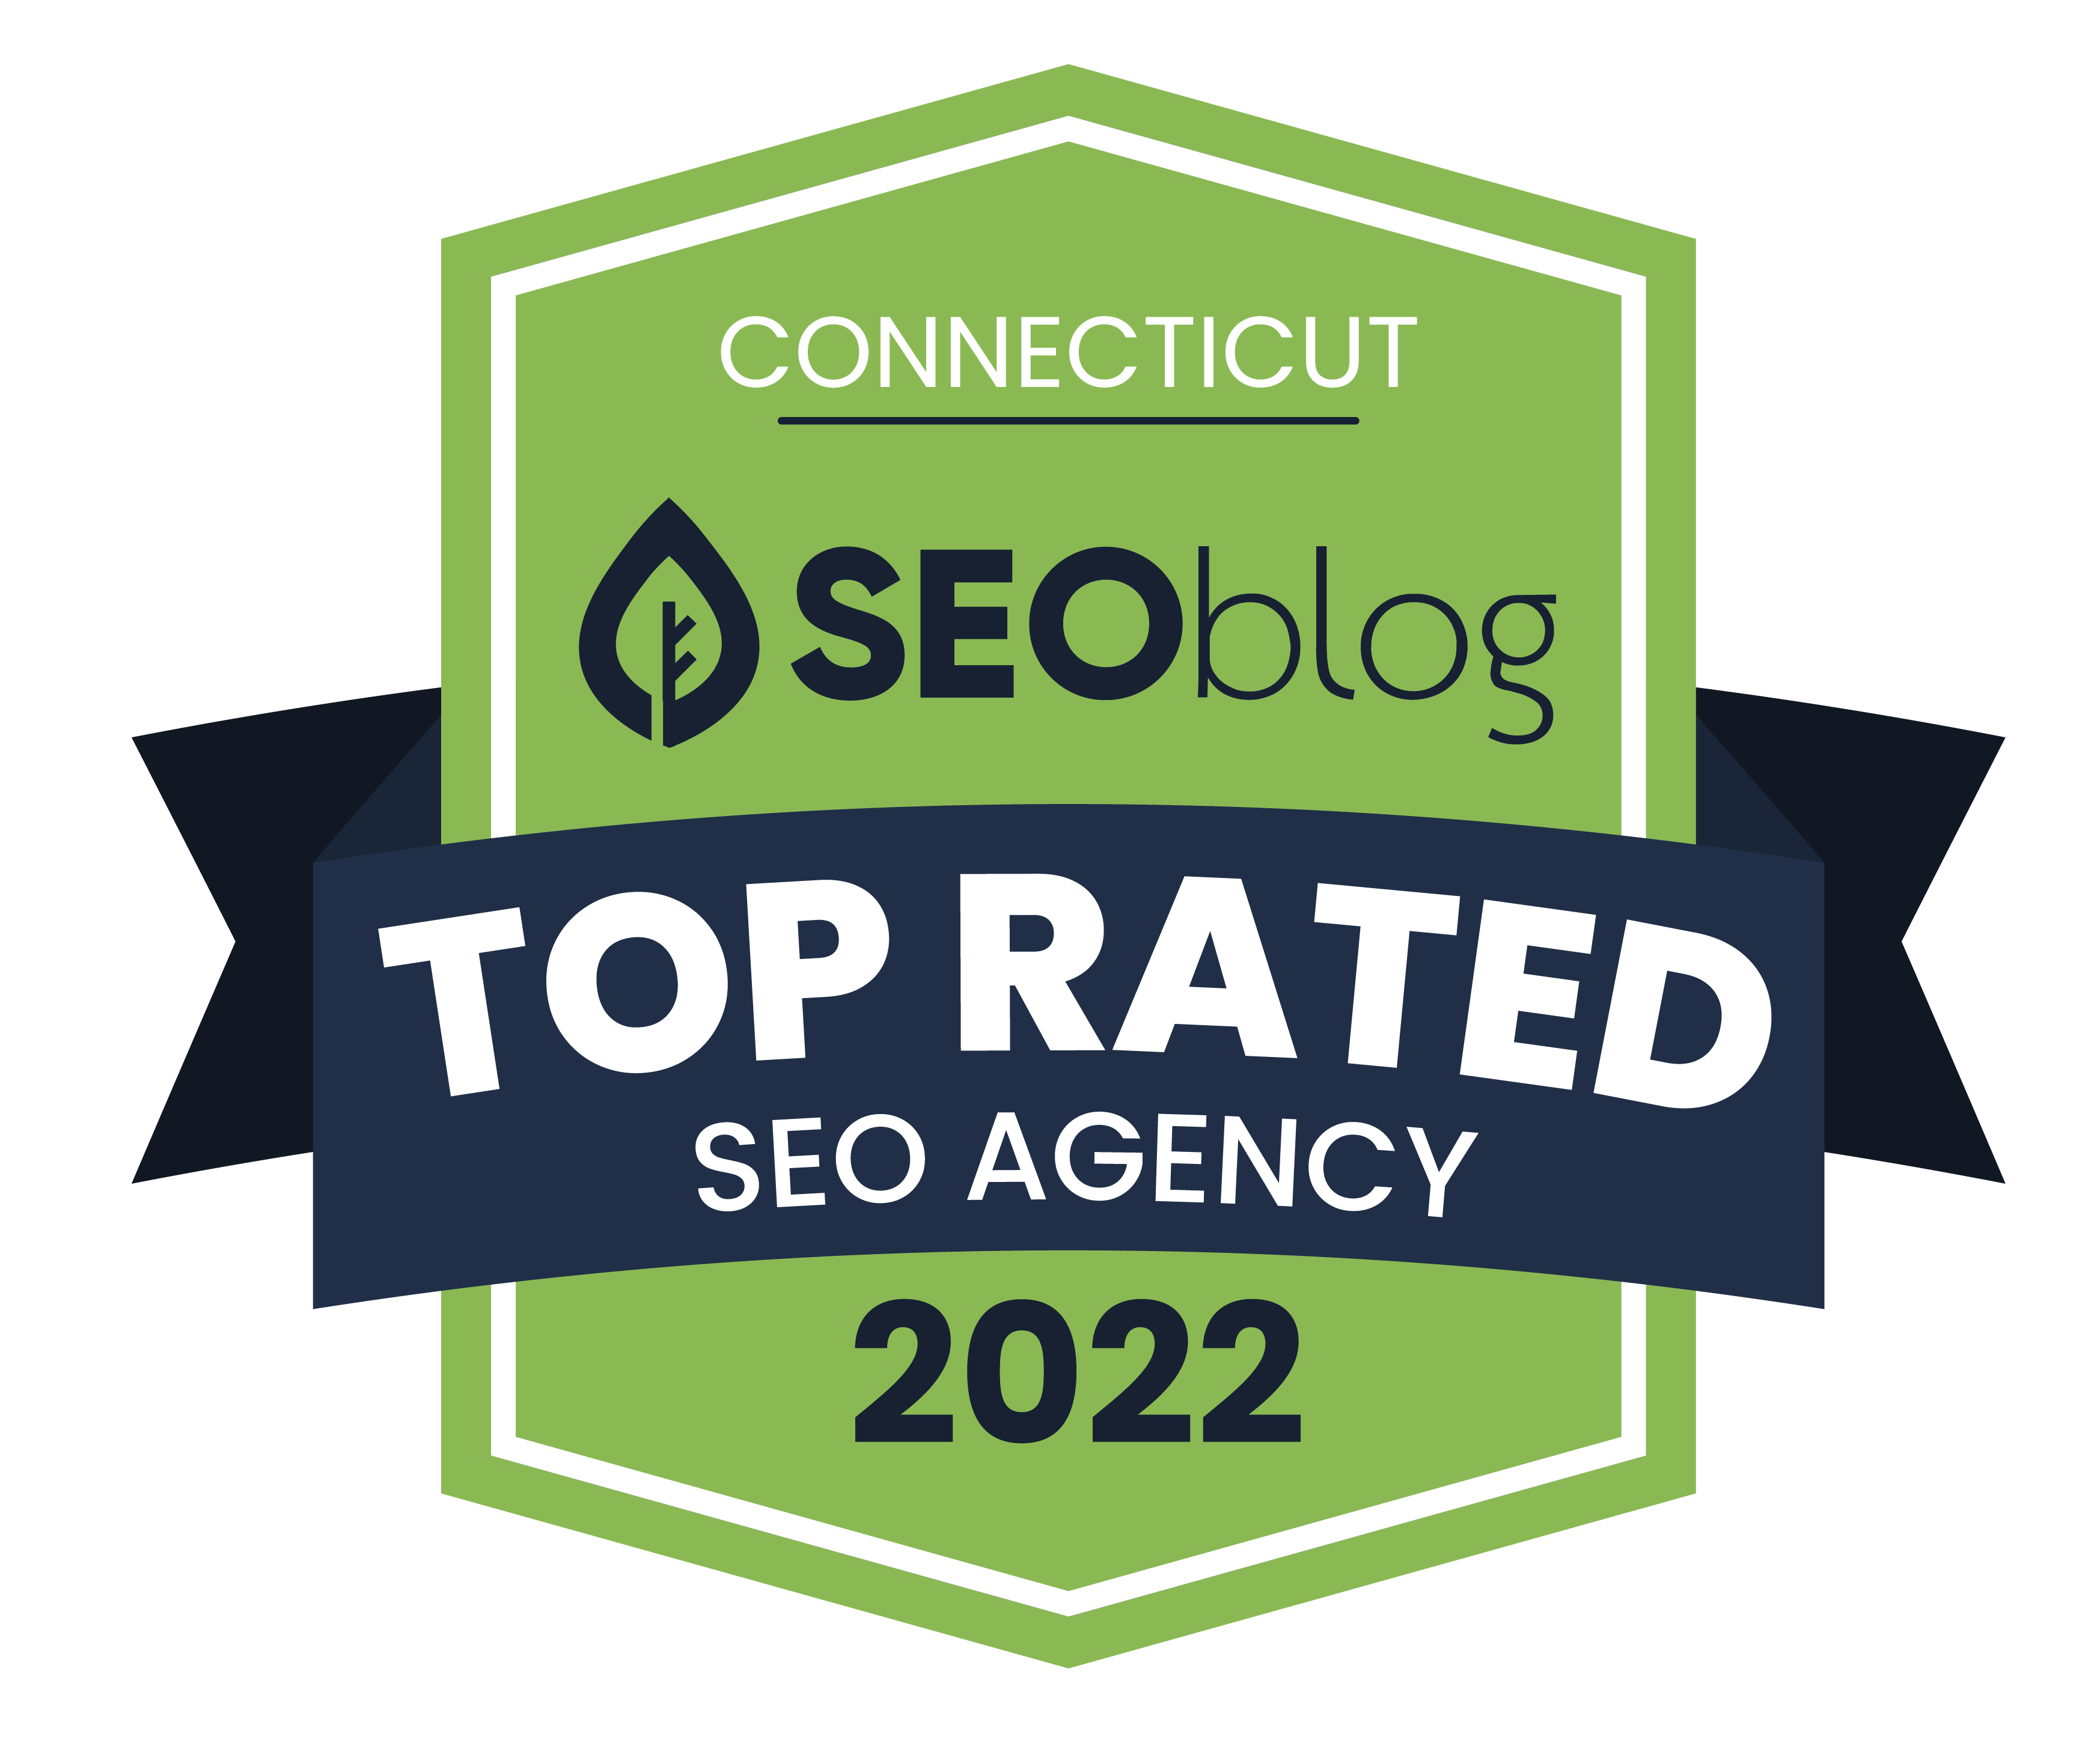 Connecticut SEO Agency